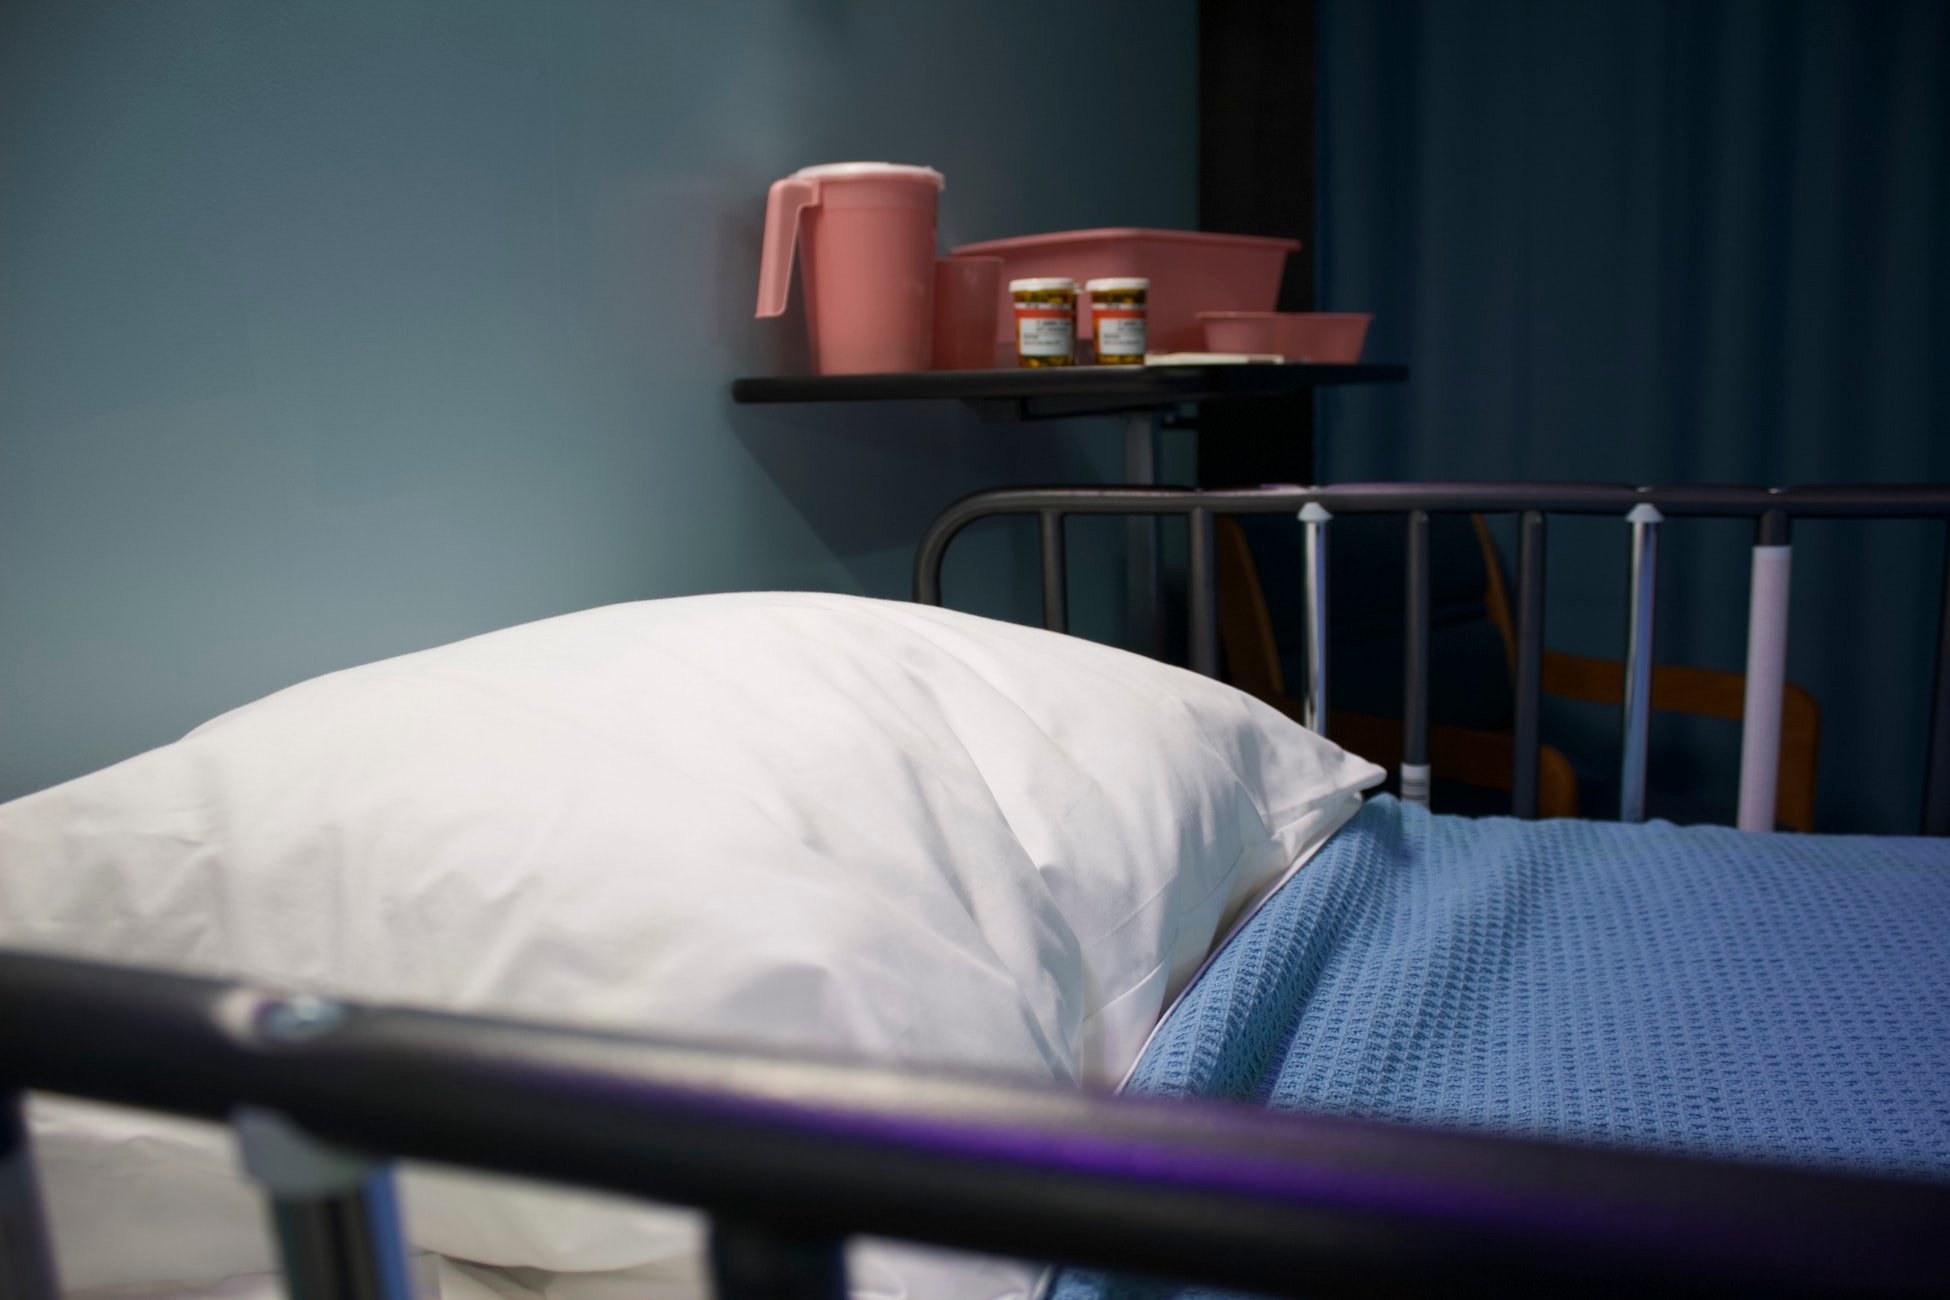 Picture of a hospital bed with bedside table next to it, on which are two boxes of pills